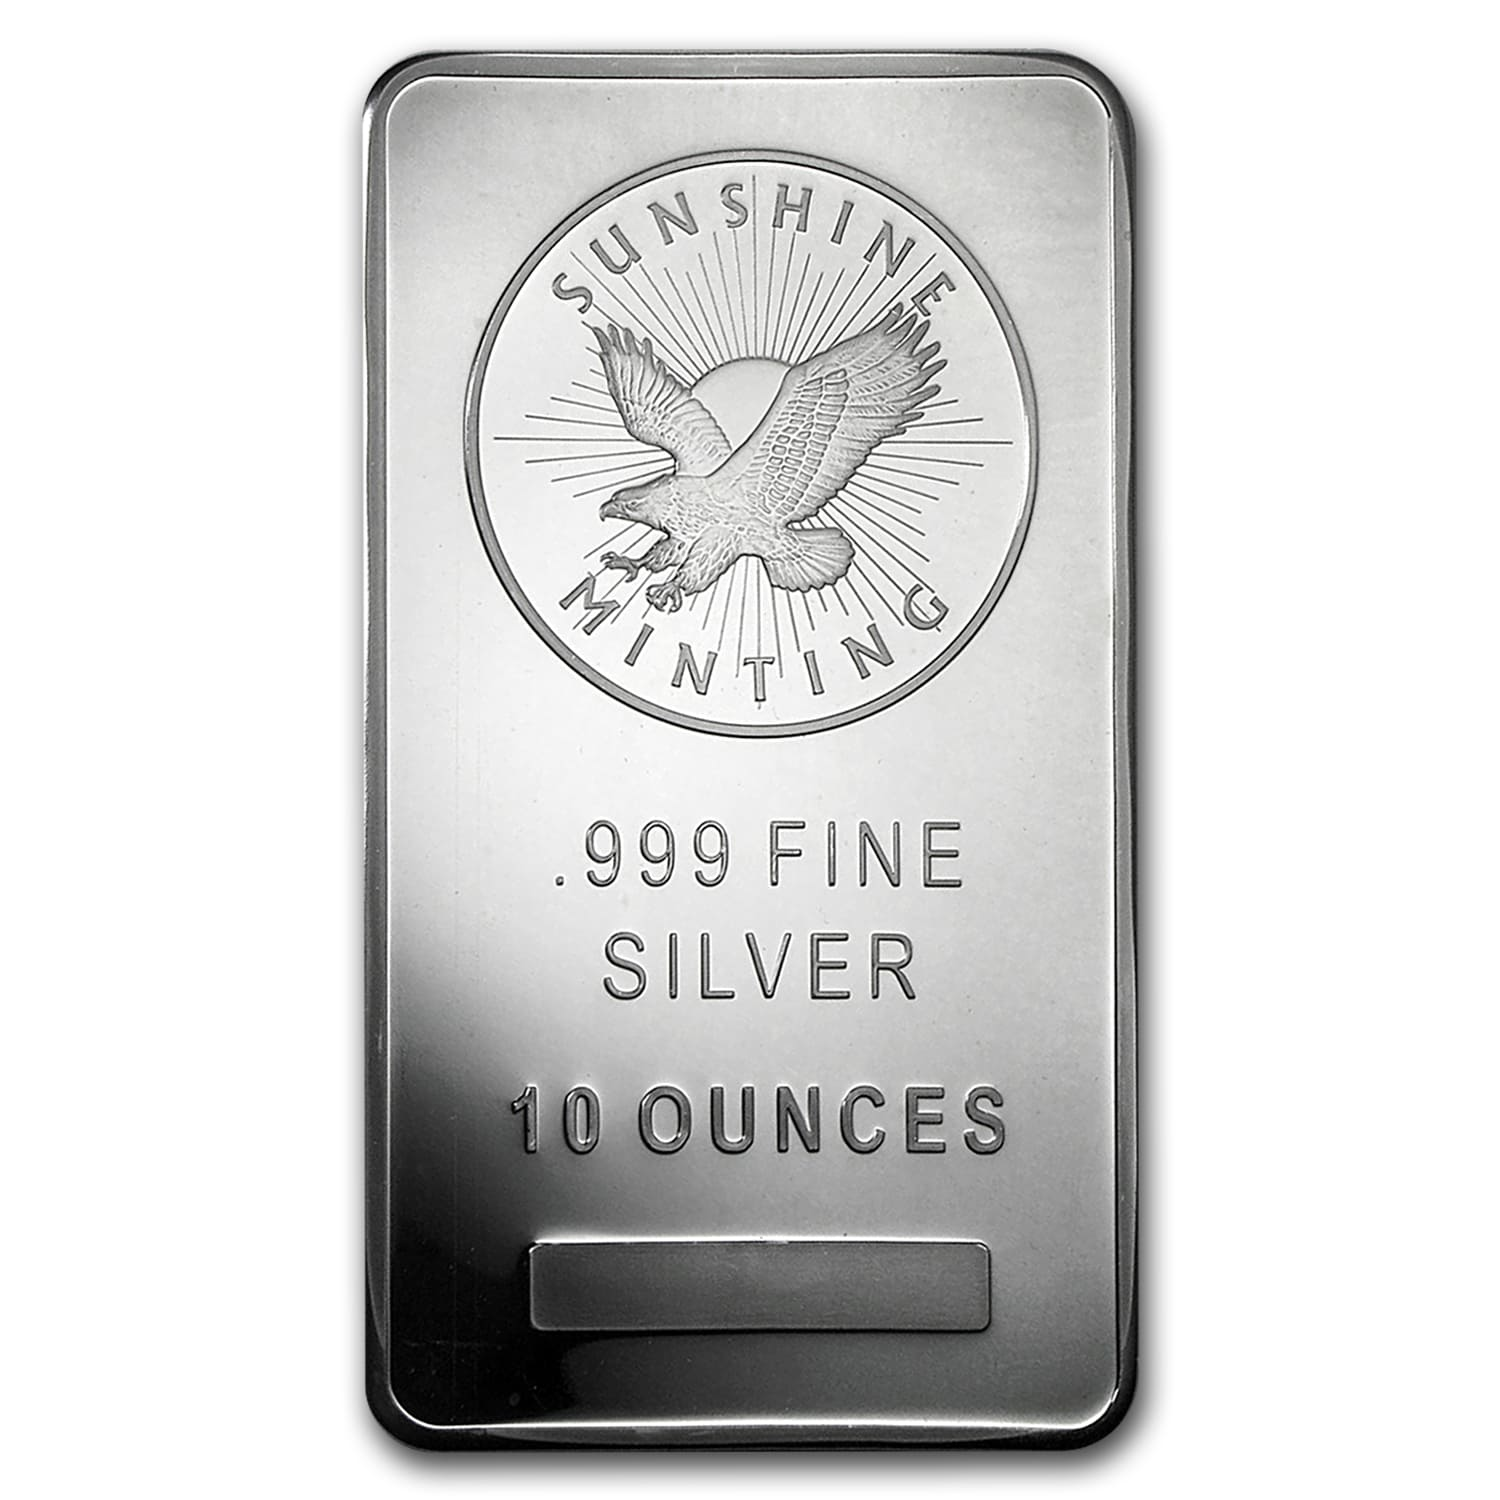 Sunshine Mint Silver Bar For Sale 10 Oz Sunshine Silver